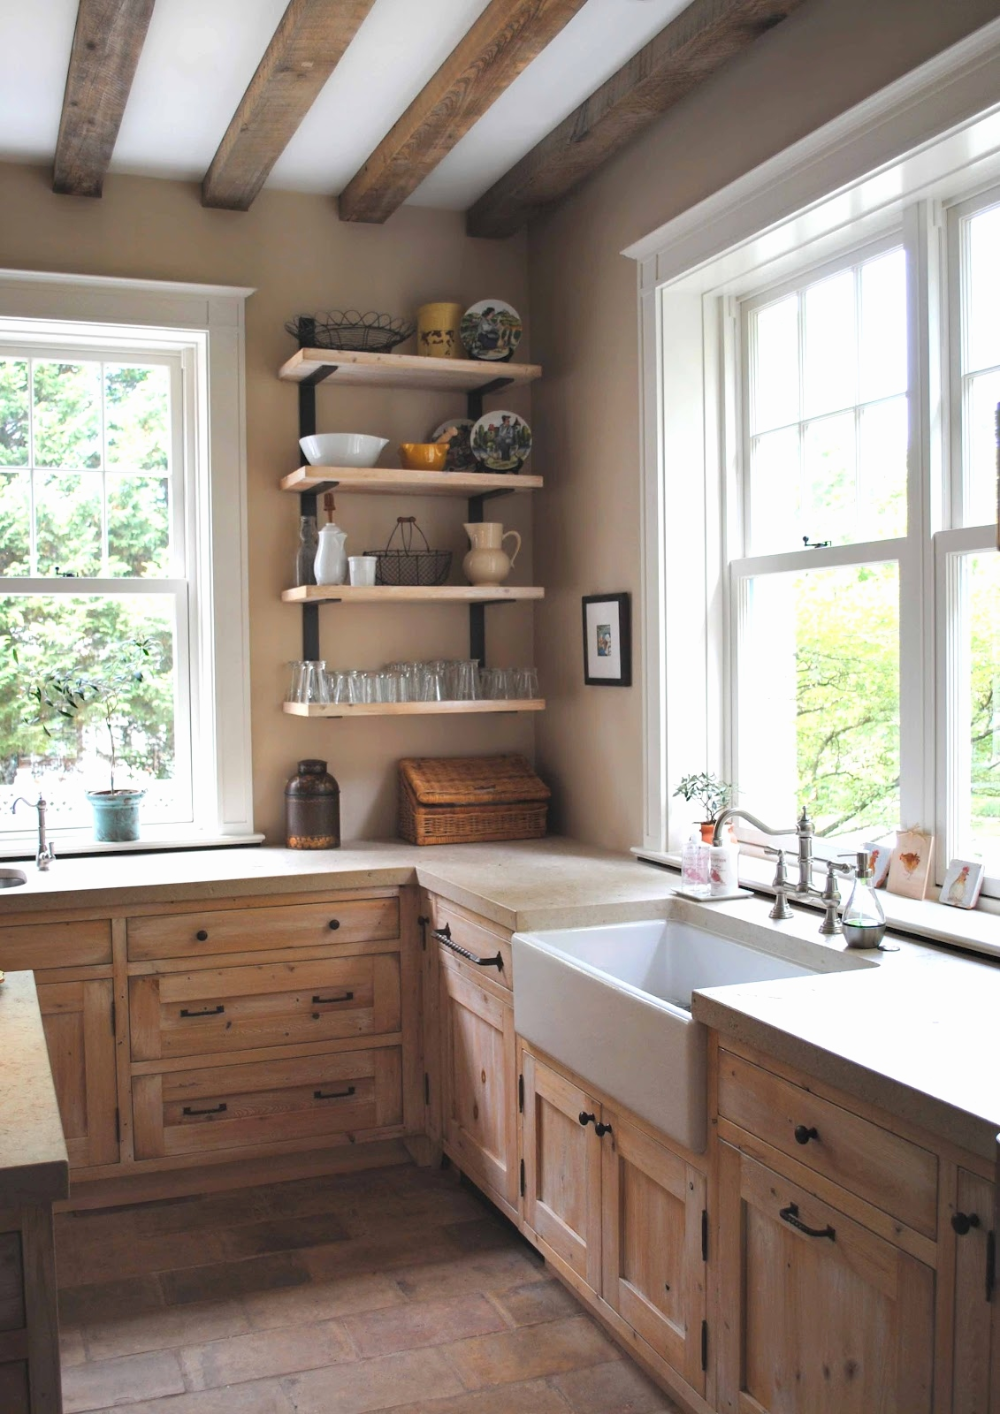 Rustic Country Pine Kitchen Design Hupehome In 2020 Country Kitchen Designs Farmhouse Kitchen Design Country Kitchen